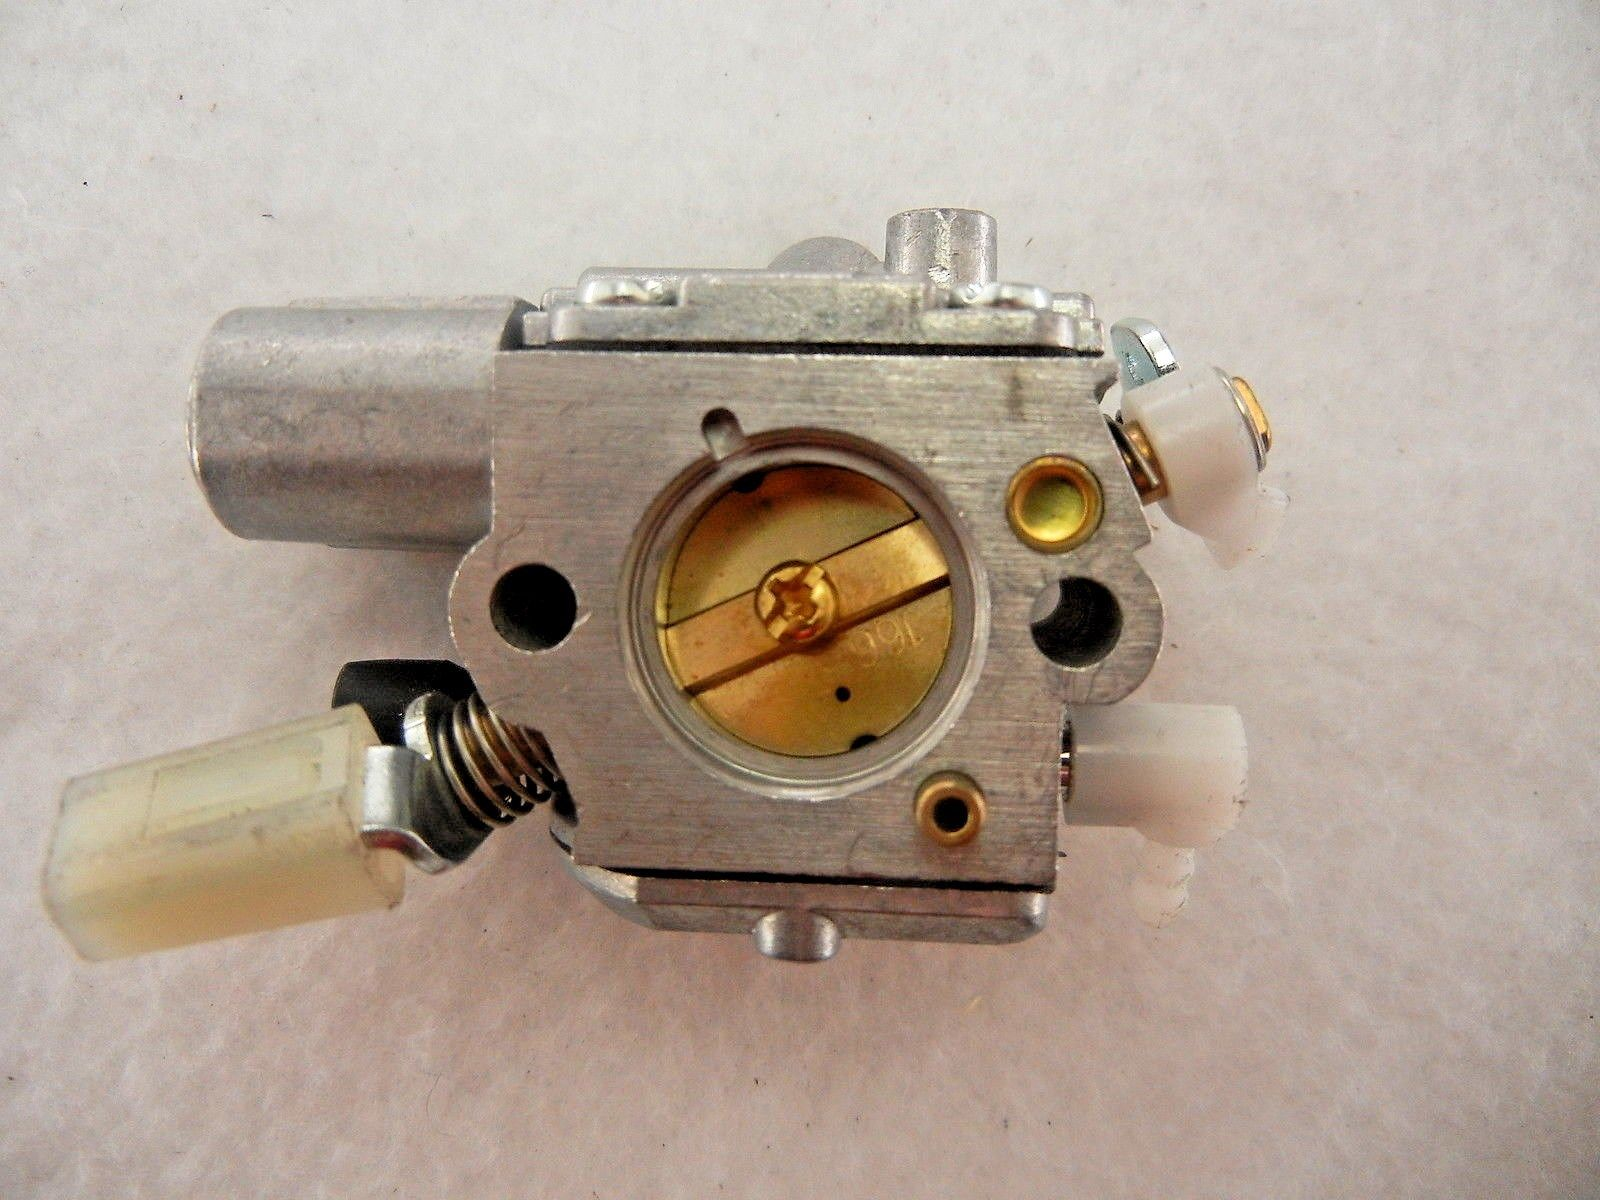 New Carburetor for STIHL MS 231, MS 251 replaces 1143 120 0641 p